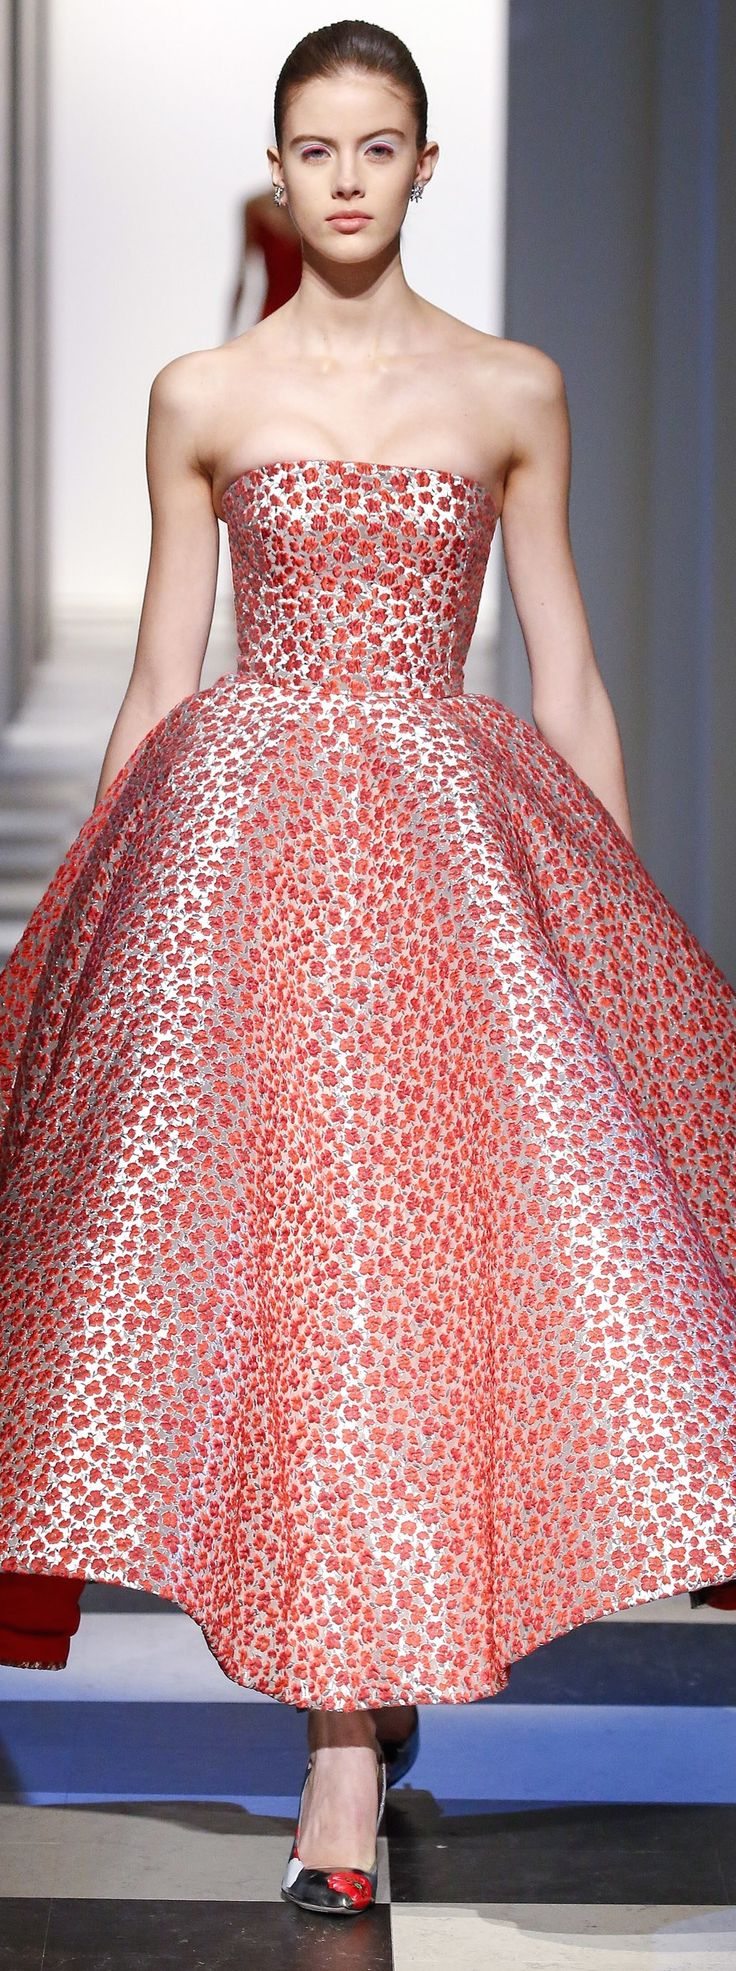 127 best Formal Dresses images on Pinterest   Couture fashion ...